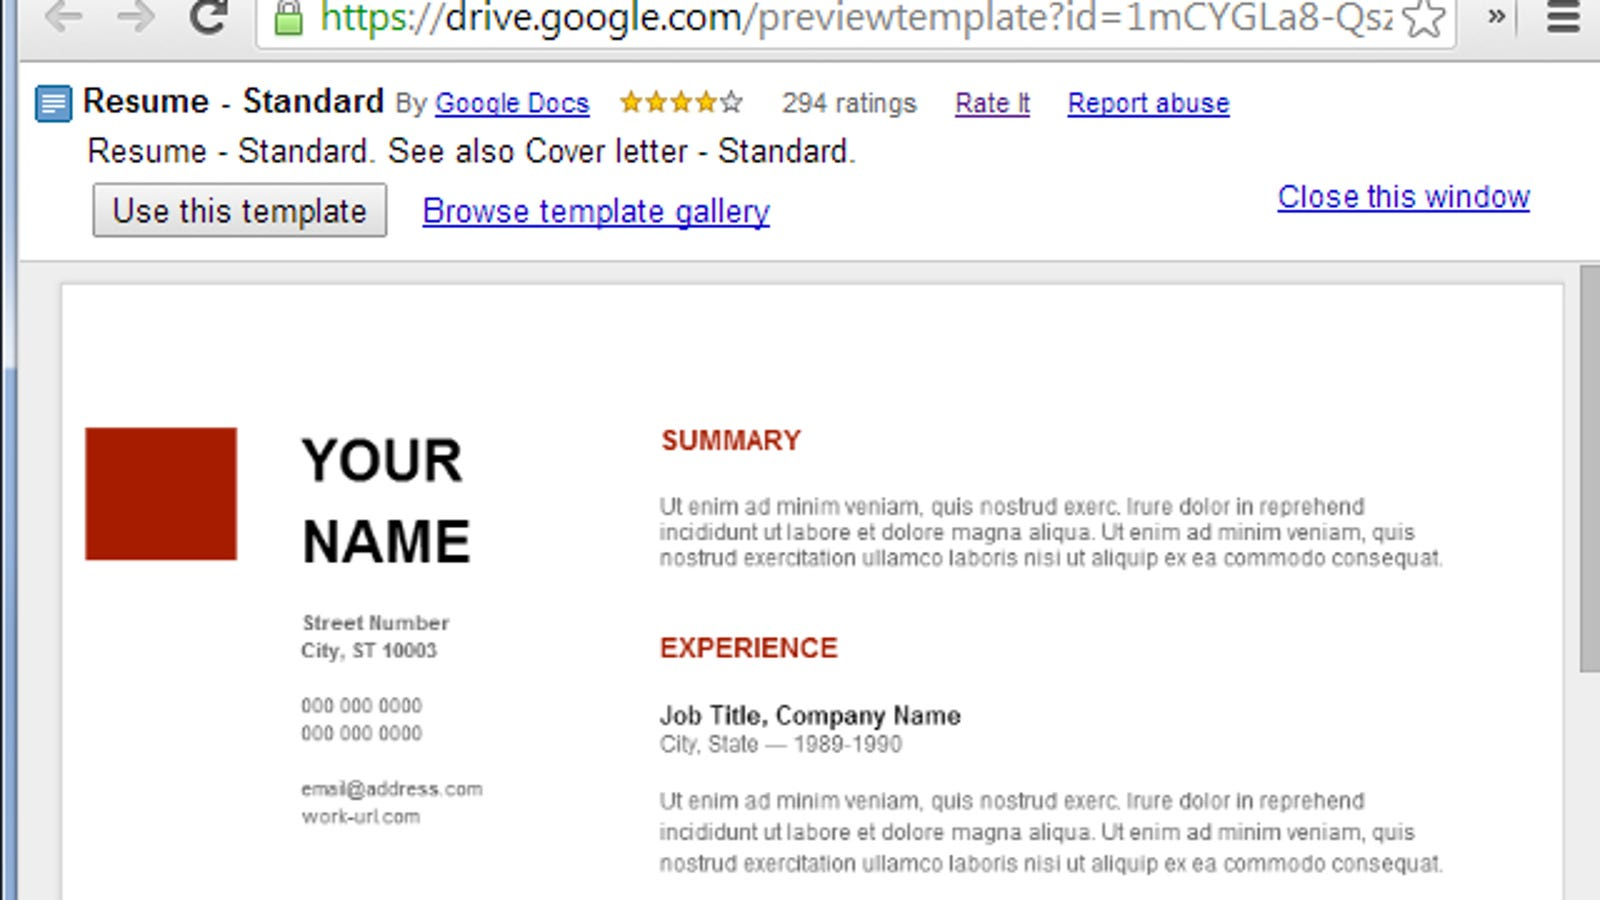 Use Google Docs Resume Templates For A Free GoodLooking Resume - Cover letter google doc template